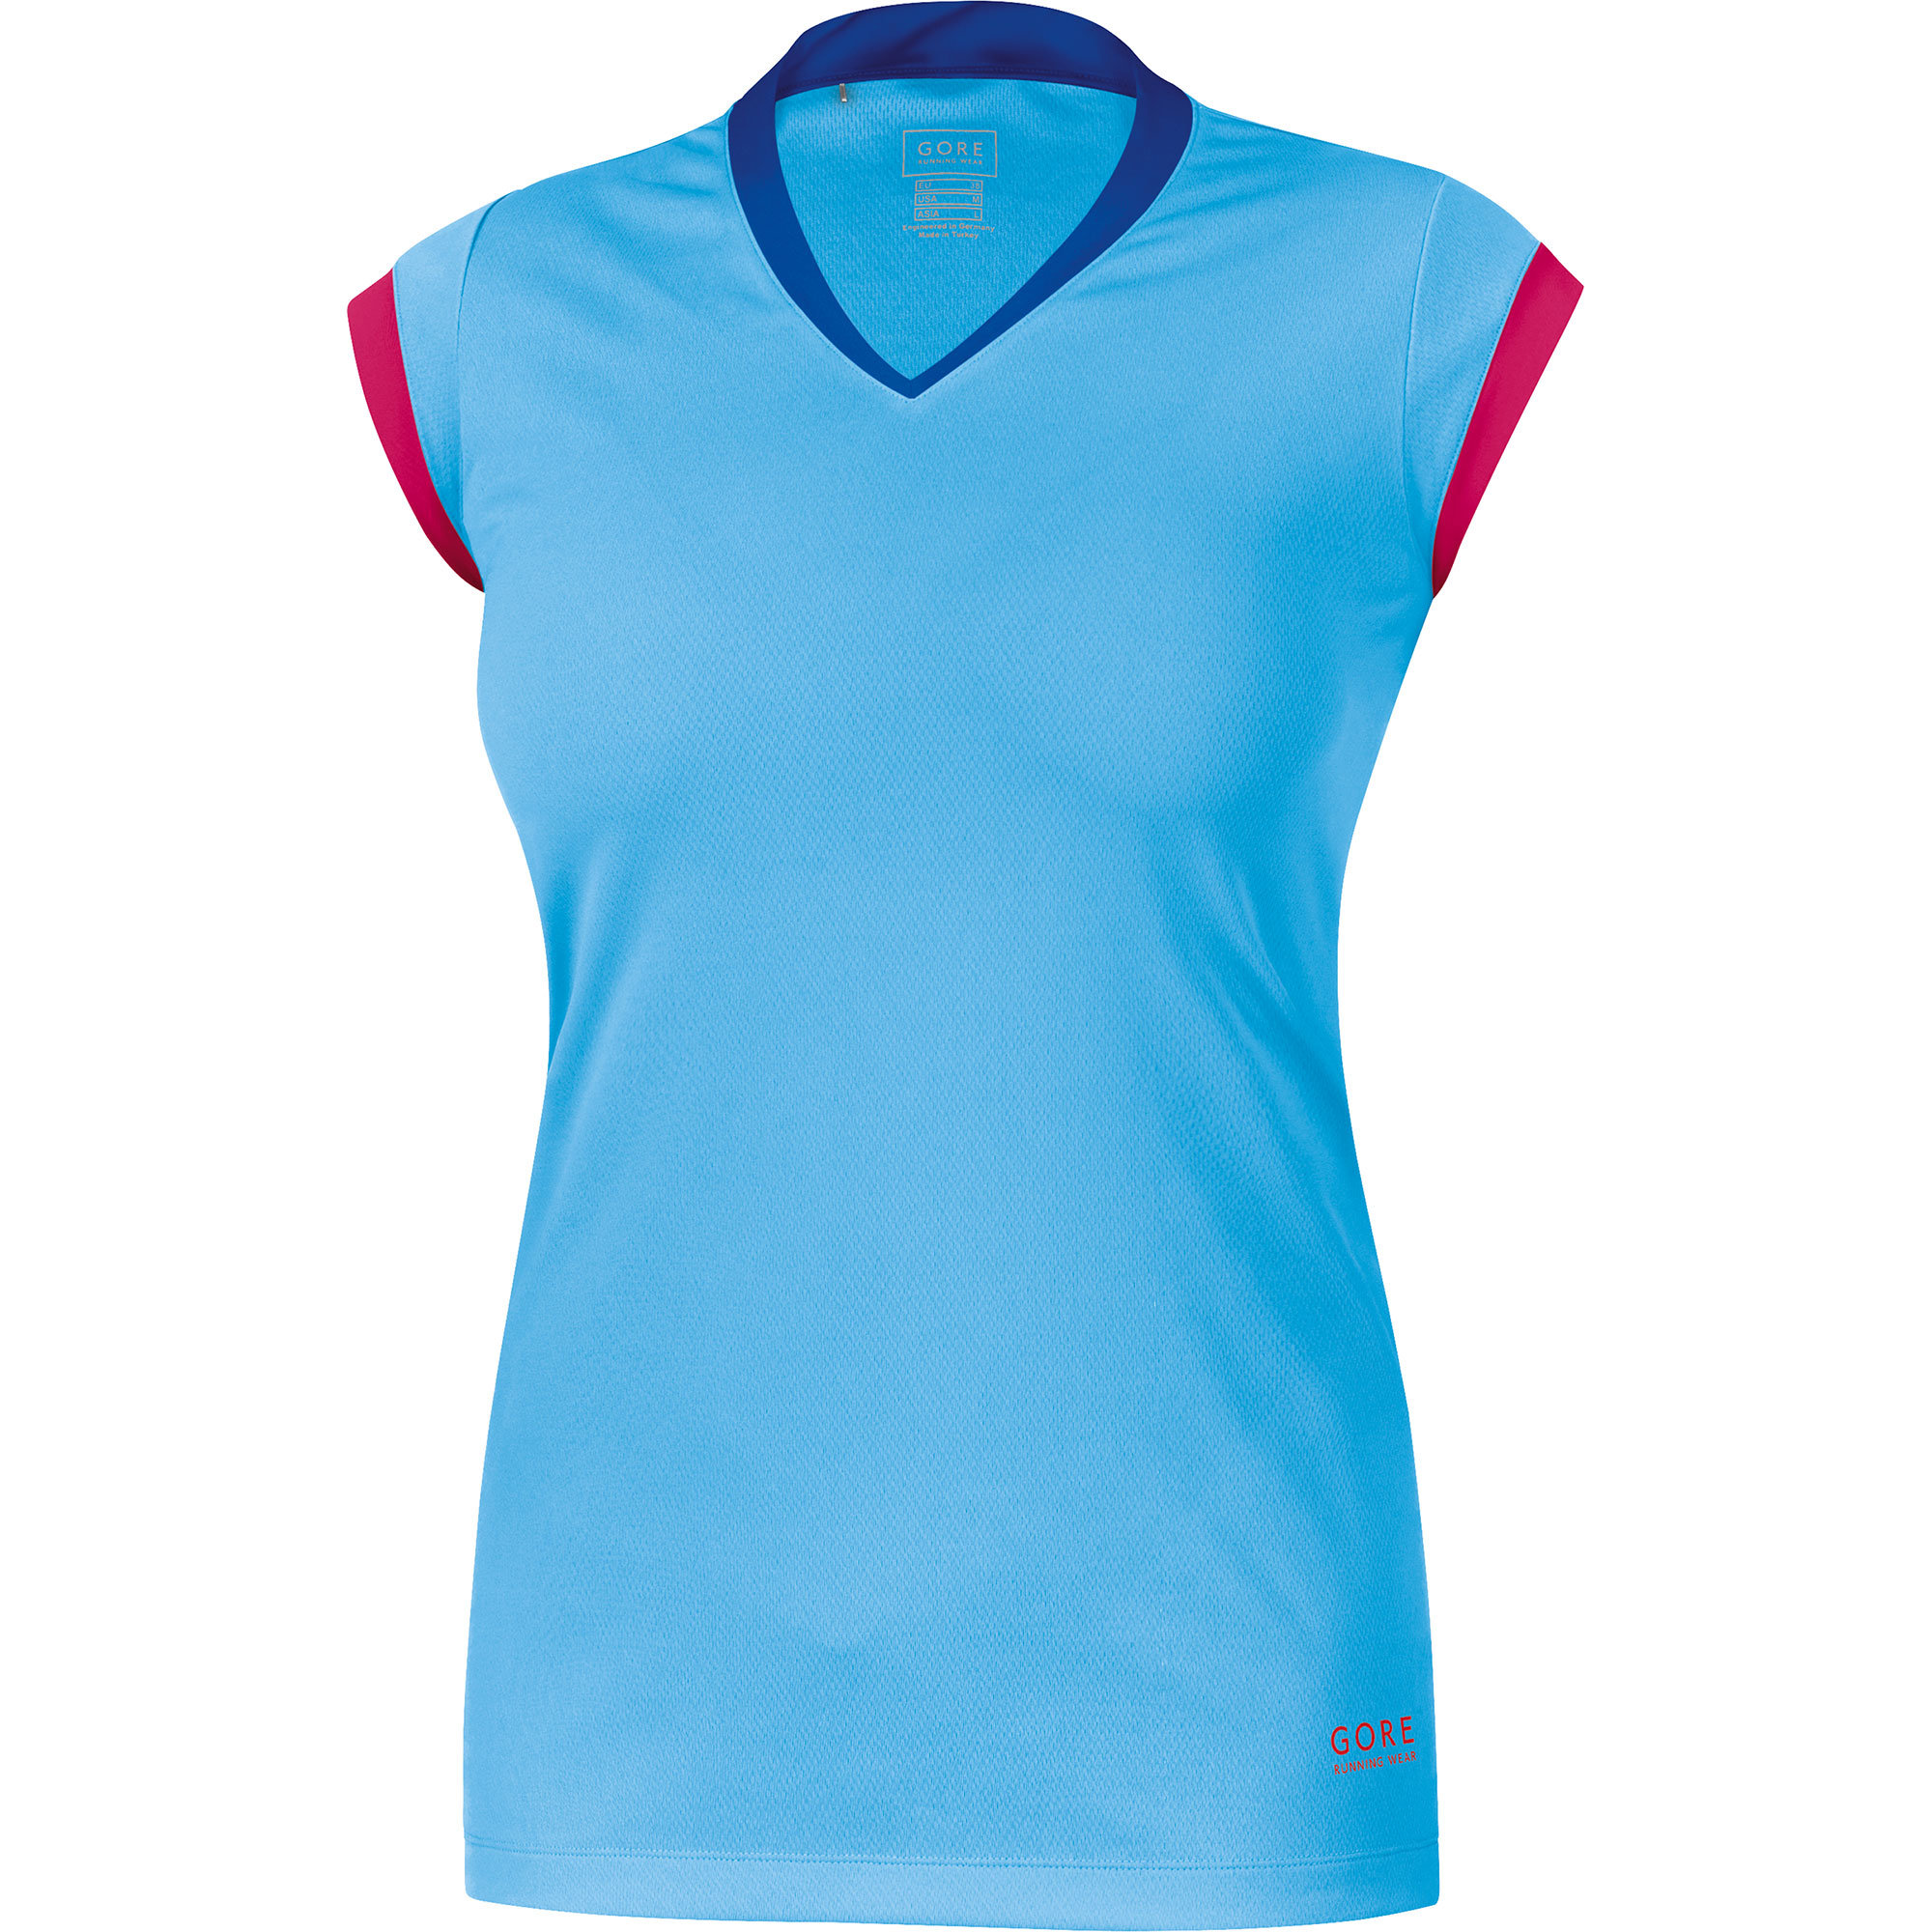 Gore Sunlight 4.0 Lady Shirt in Hellblau, Rot